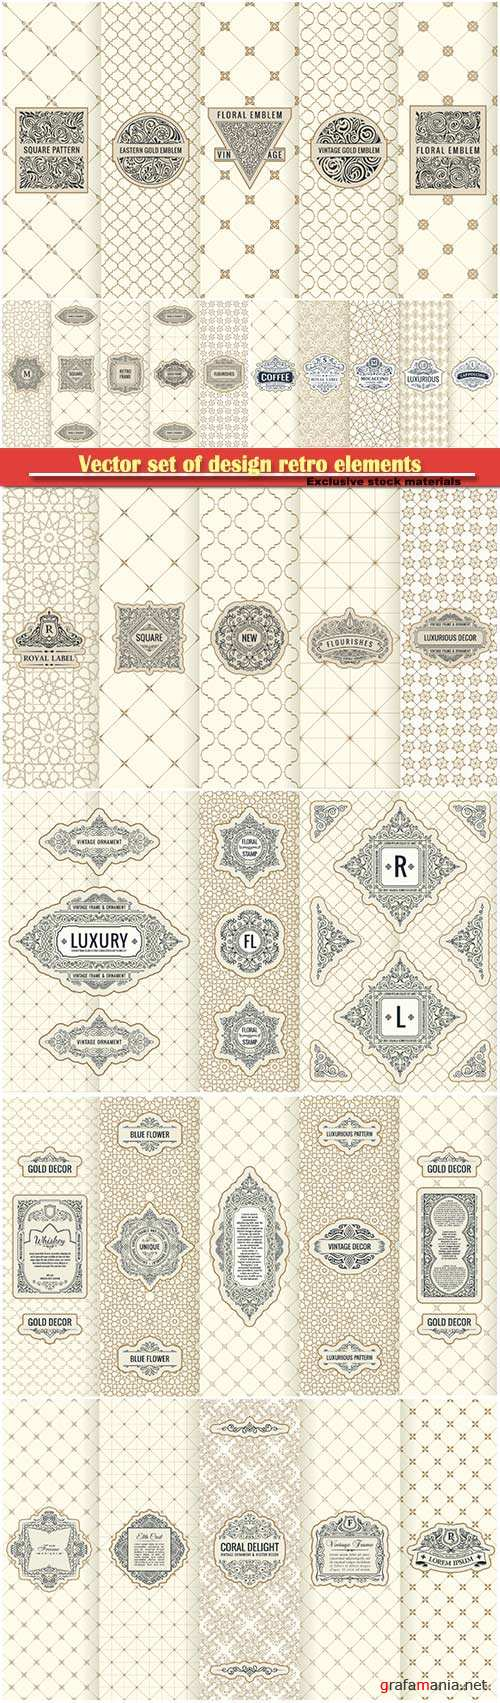 Vector set of design retro elements, restaurant labels, icon, logo, frame, luxury packaging